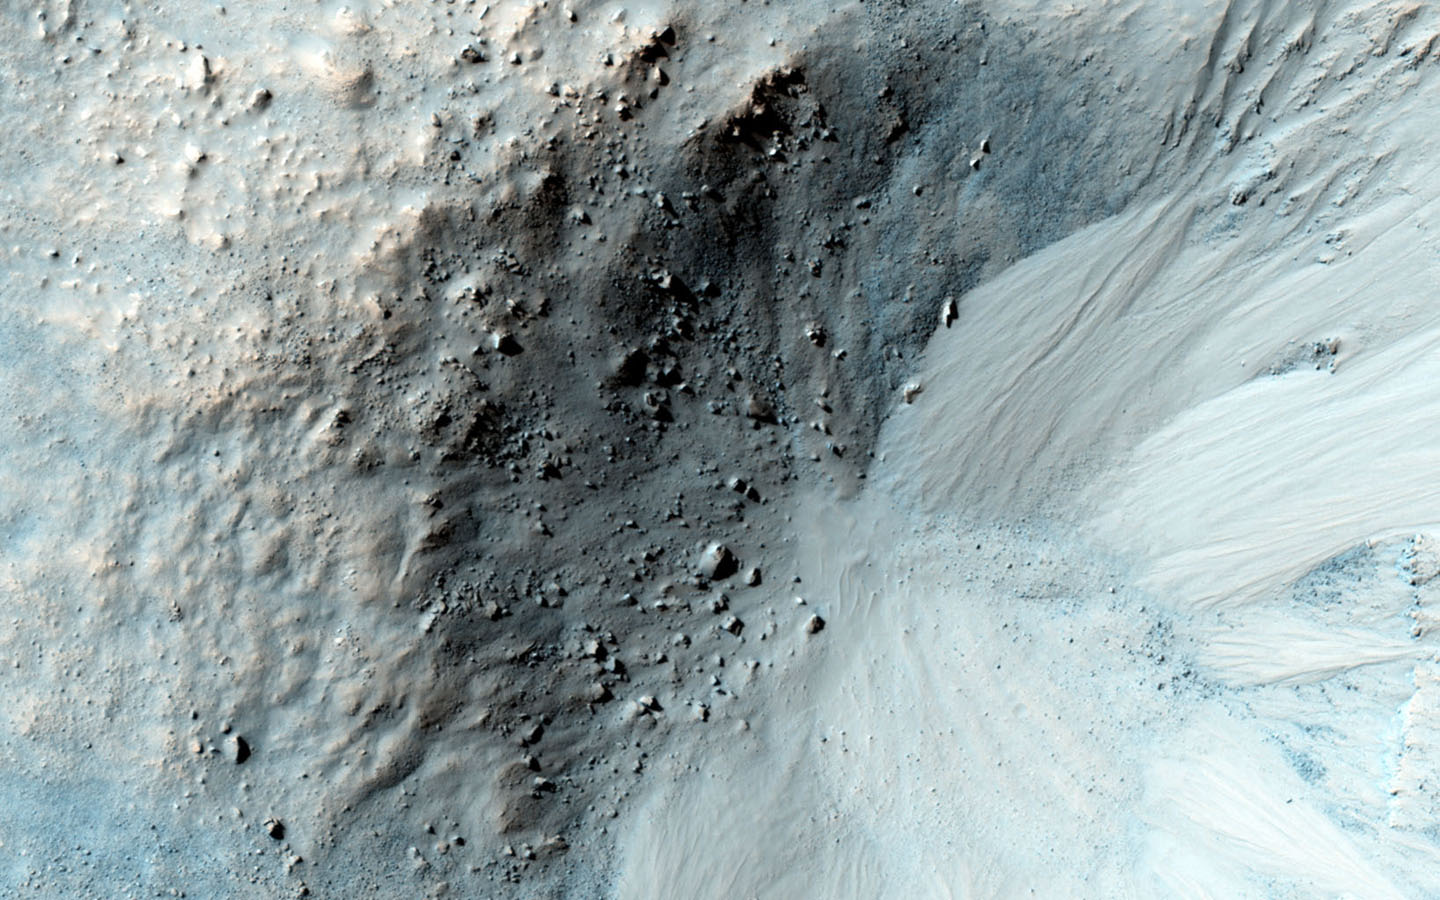 This impact crater in the region of Mars called Libya Montes, observed by NASA's Mars Reconnaissance Orbiter, shows typical gullies with alcoves at the top, channels, and depositional fans at the bottom.